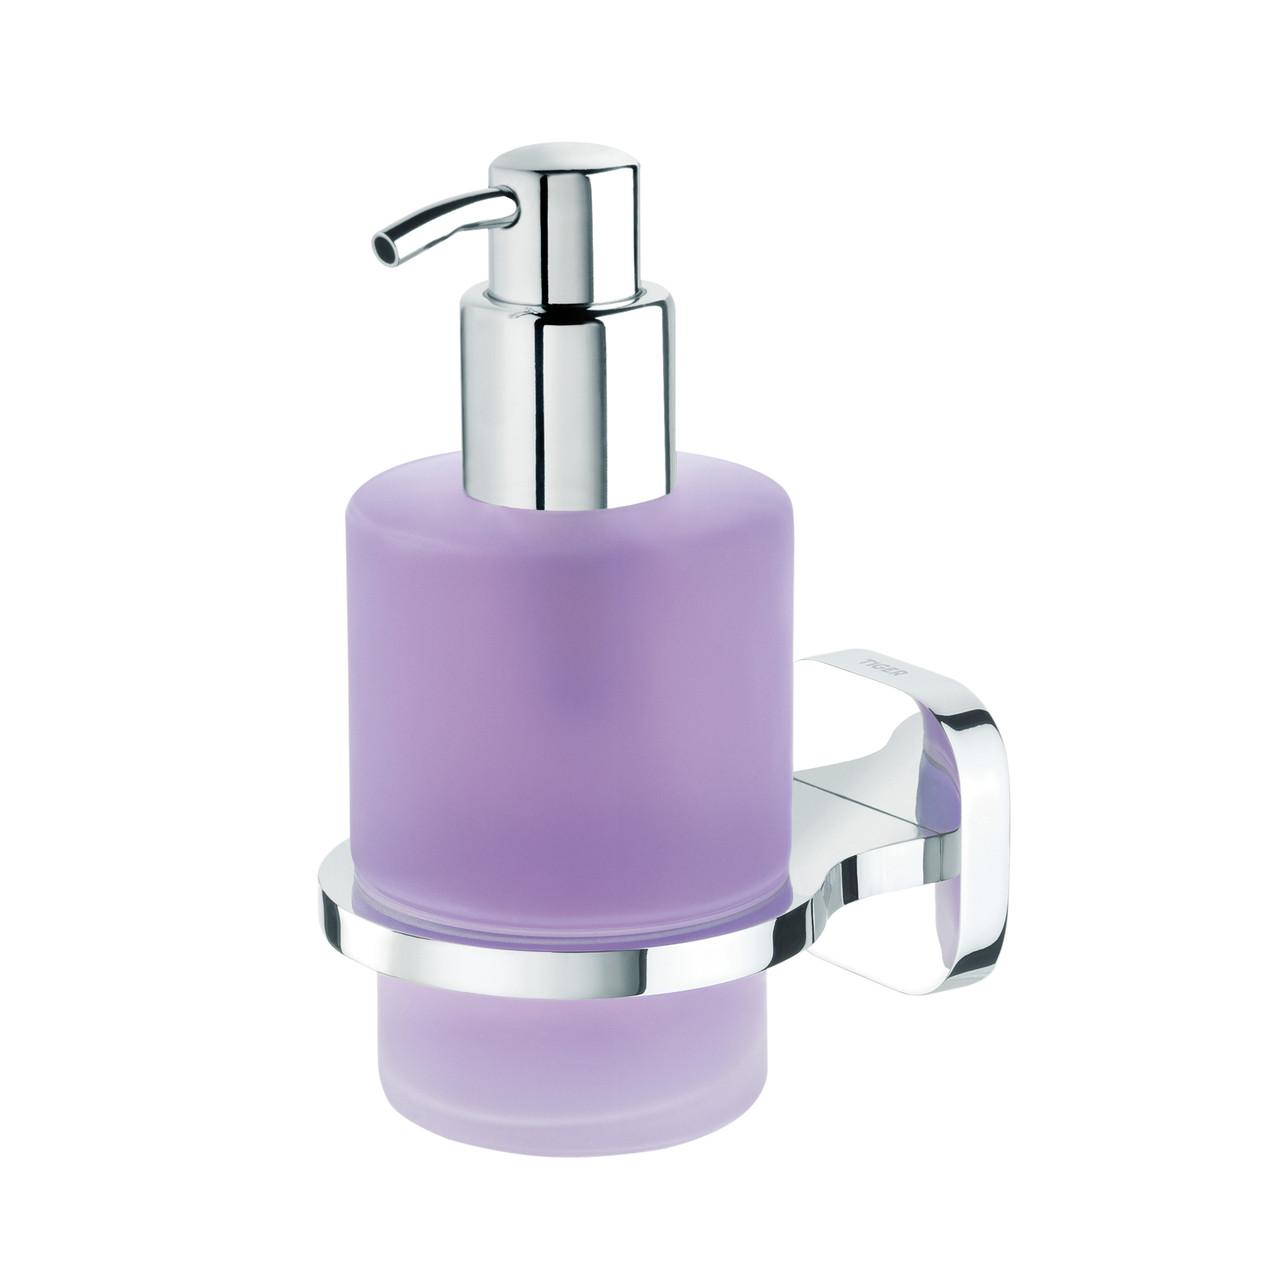 Soap Dispenser Tiger Ramos Glass And Polished Stainless Steel